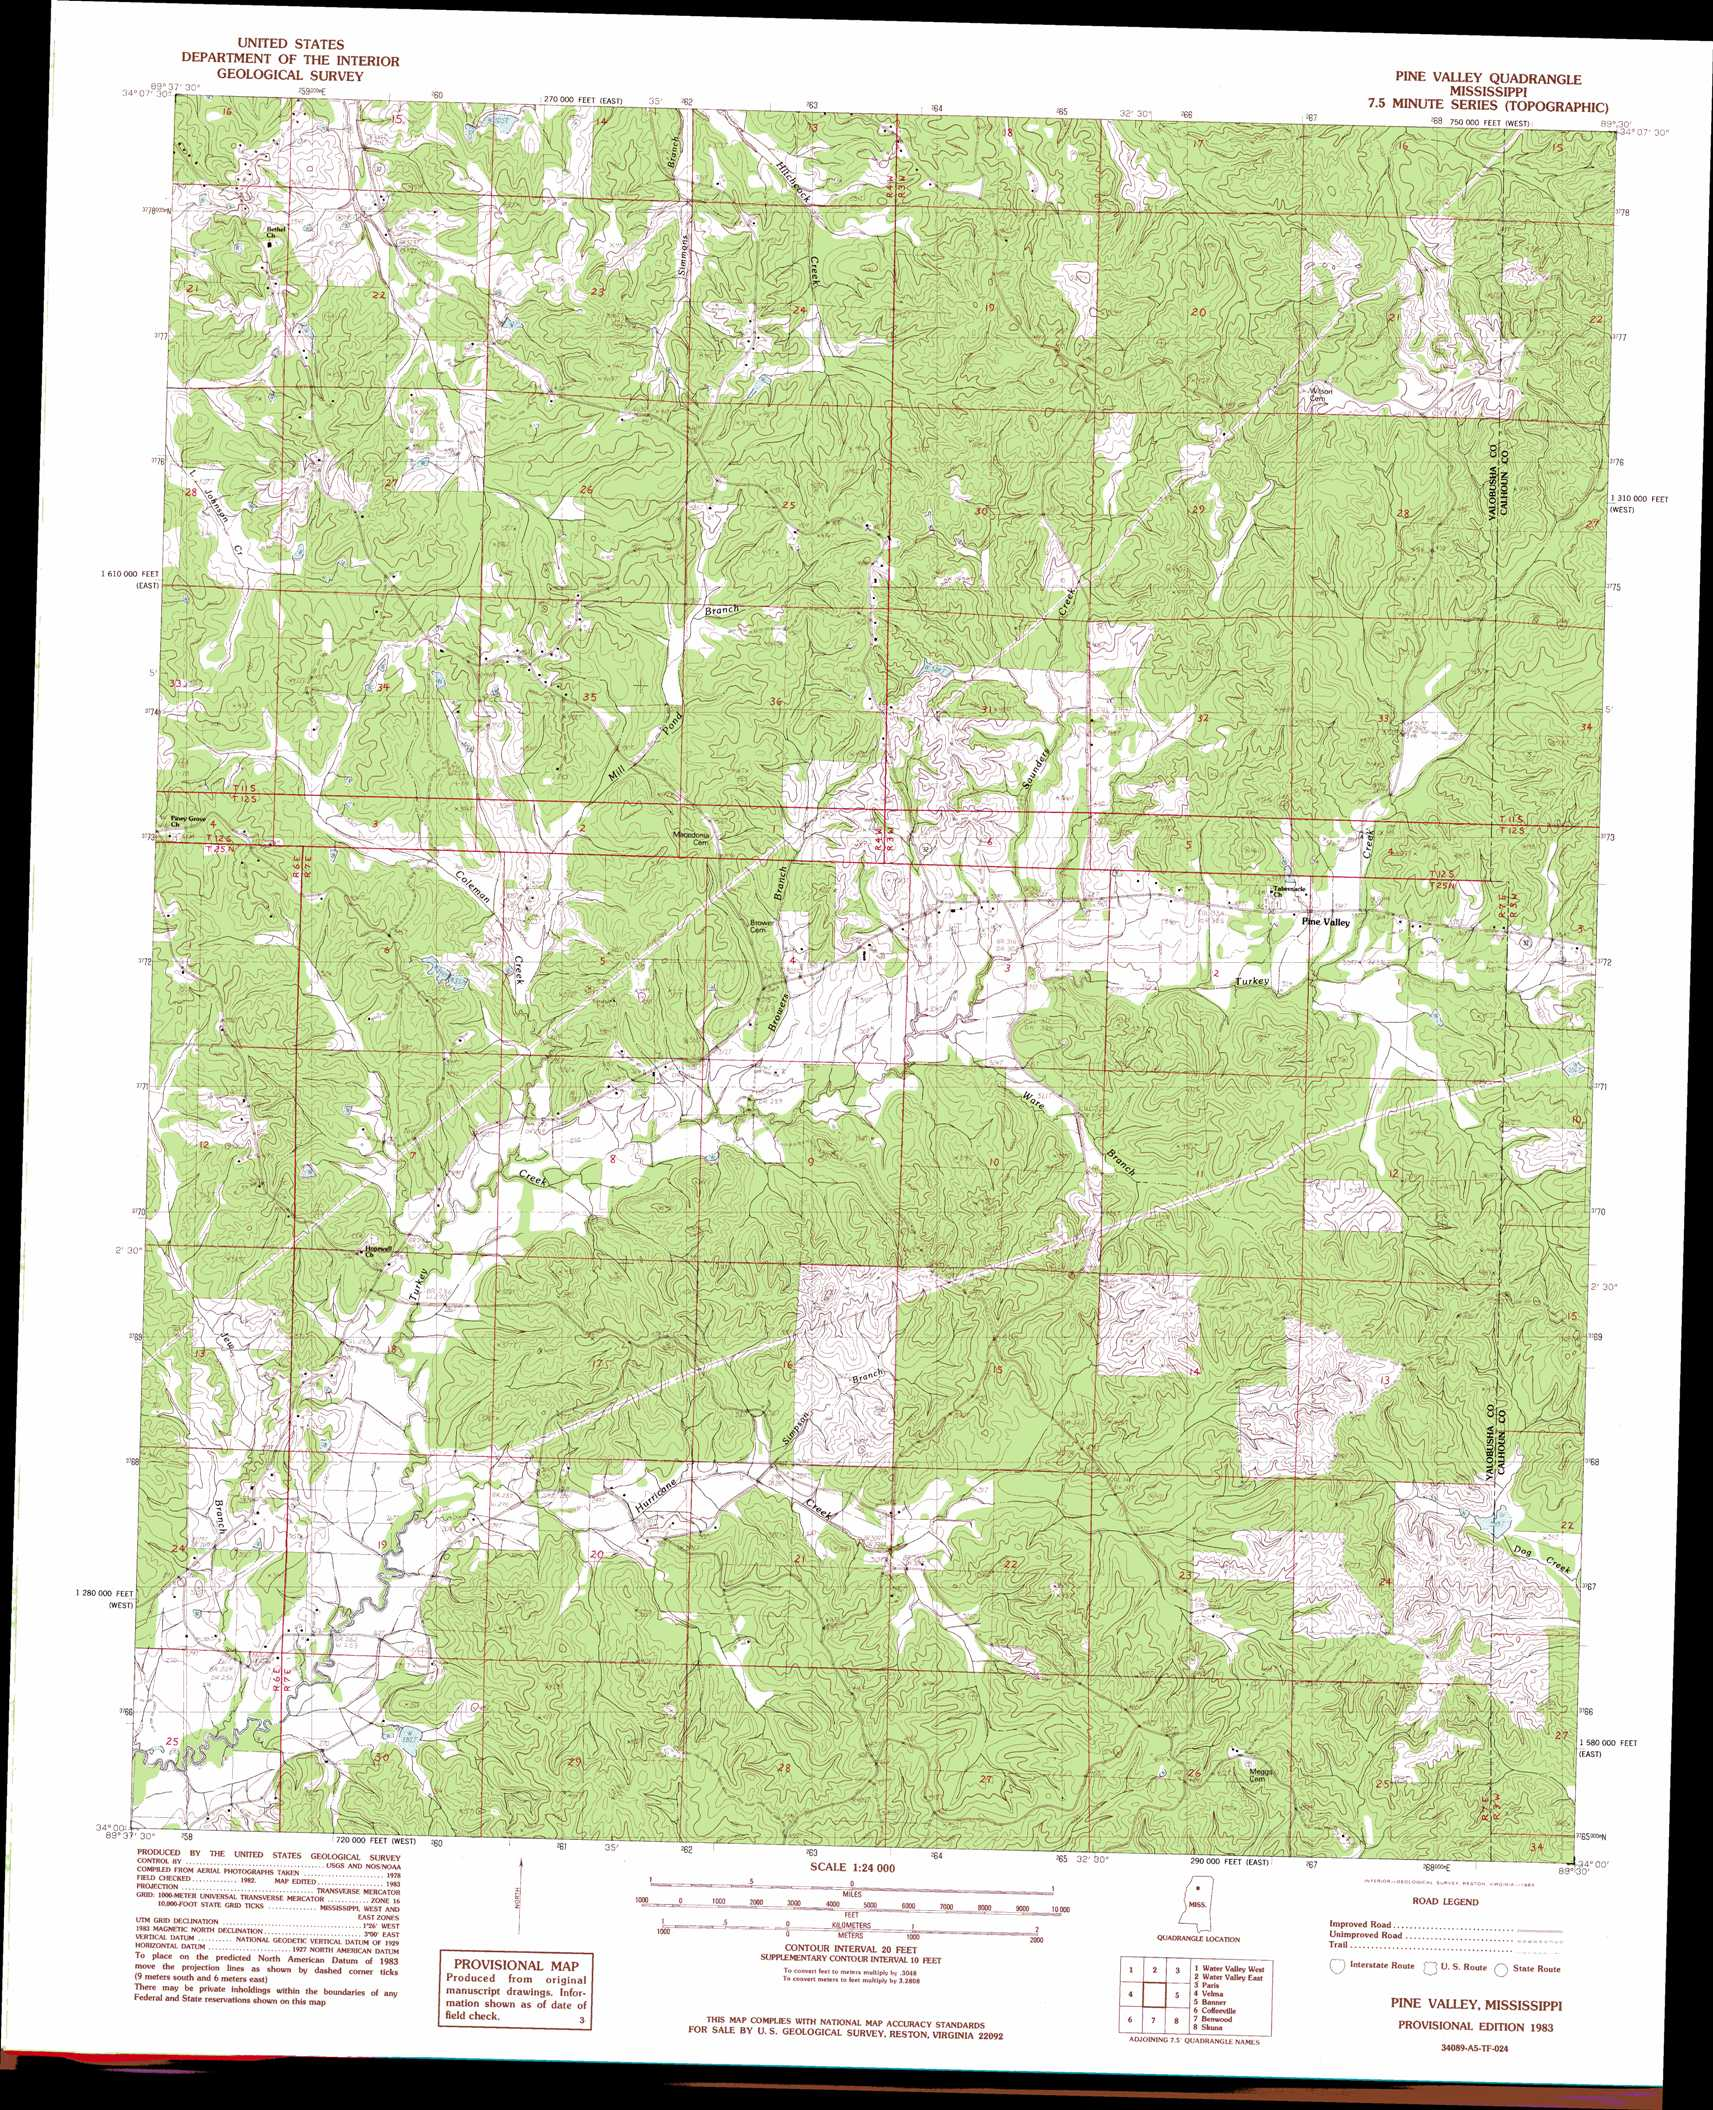 Pine Valley topographic map, MS - USGS Topo Quad 34089a5